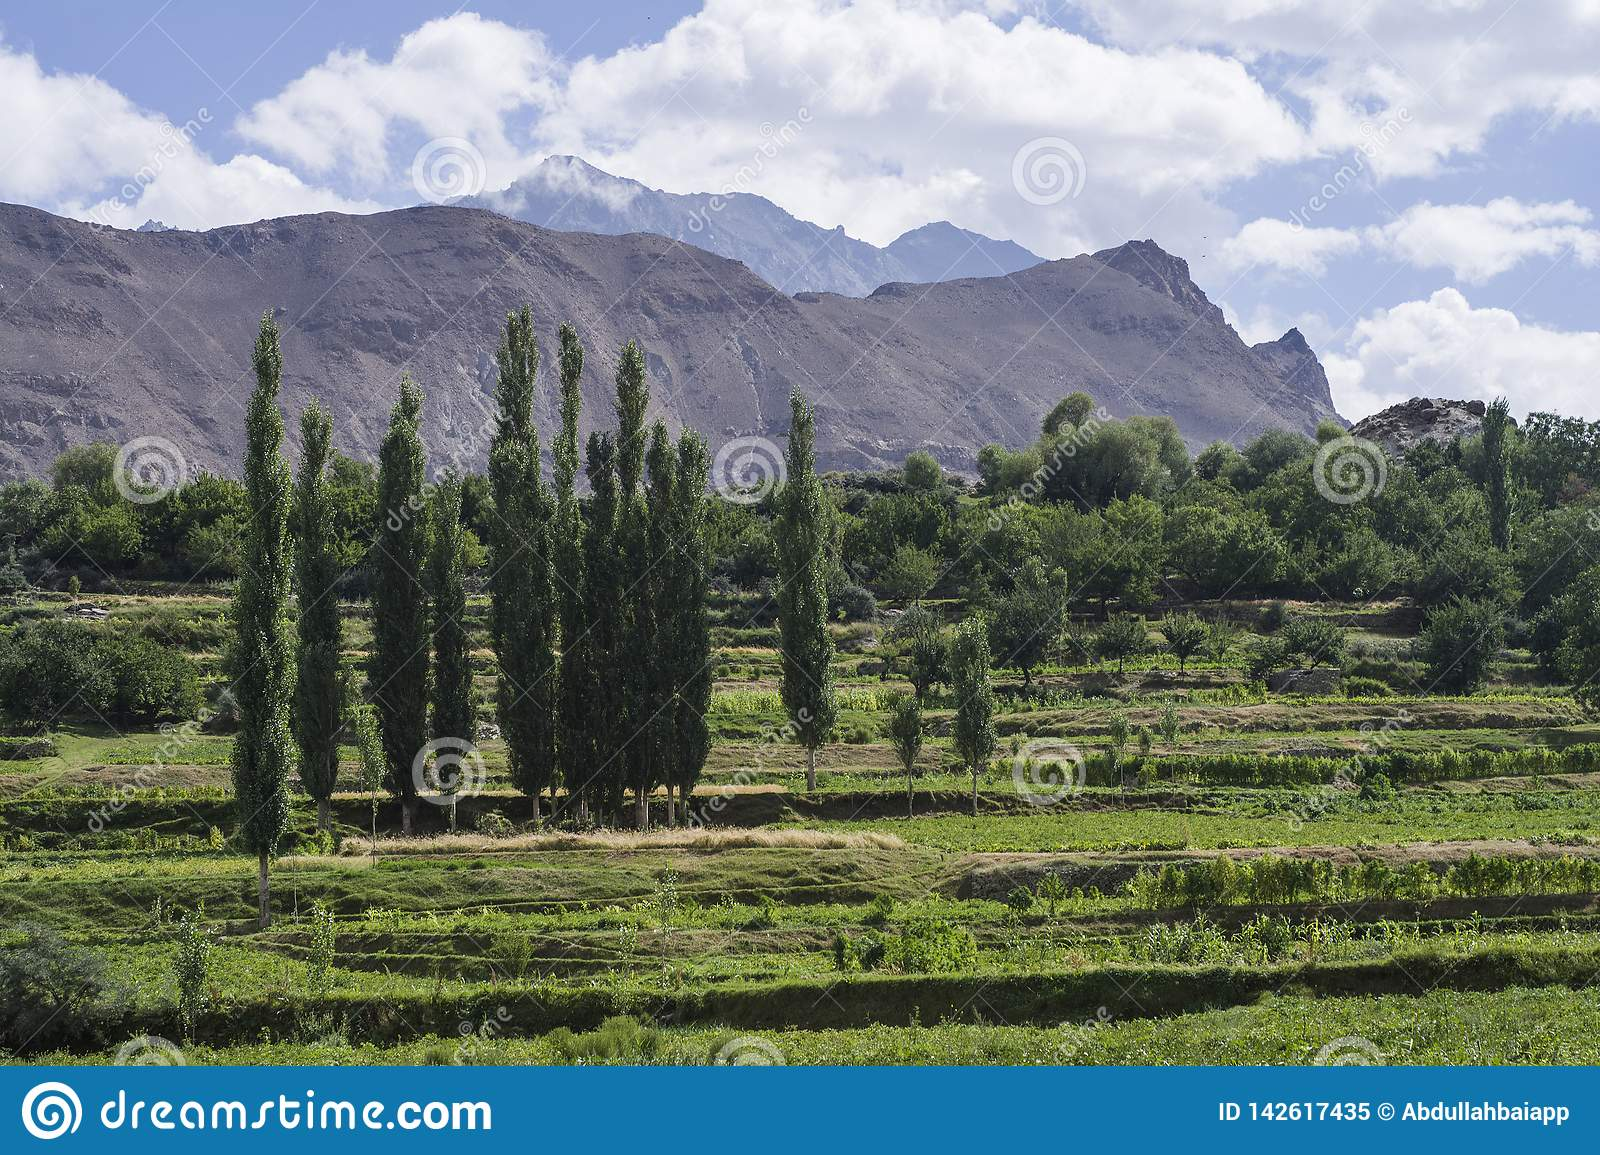 A farm of Poplar trees in Hoper village, Nagar, Pakistan